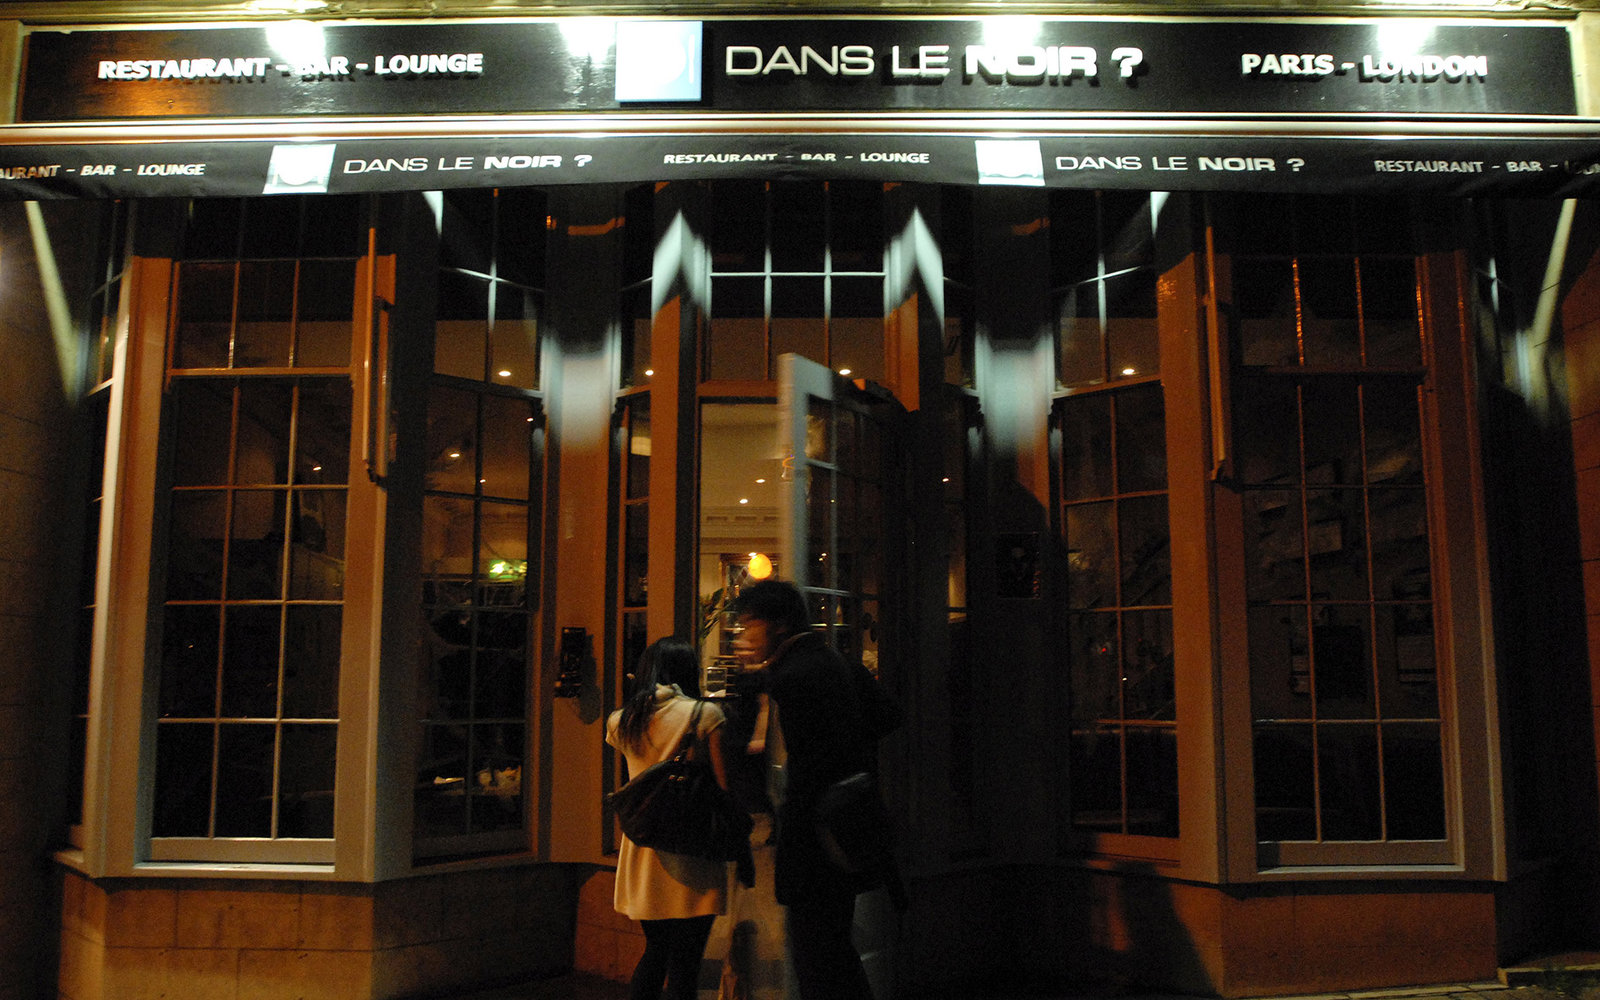 LONDON - OCTOBER 31:  Two patrons enter the restaurant Dans Le Noir? in London, England, on October 31, 2006. They are served dinner in complete darkness by blind servers. Patrons must rely on their server for everything, including bathroom breaks.  (Phot